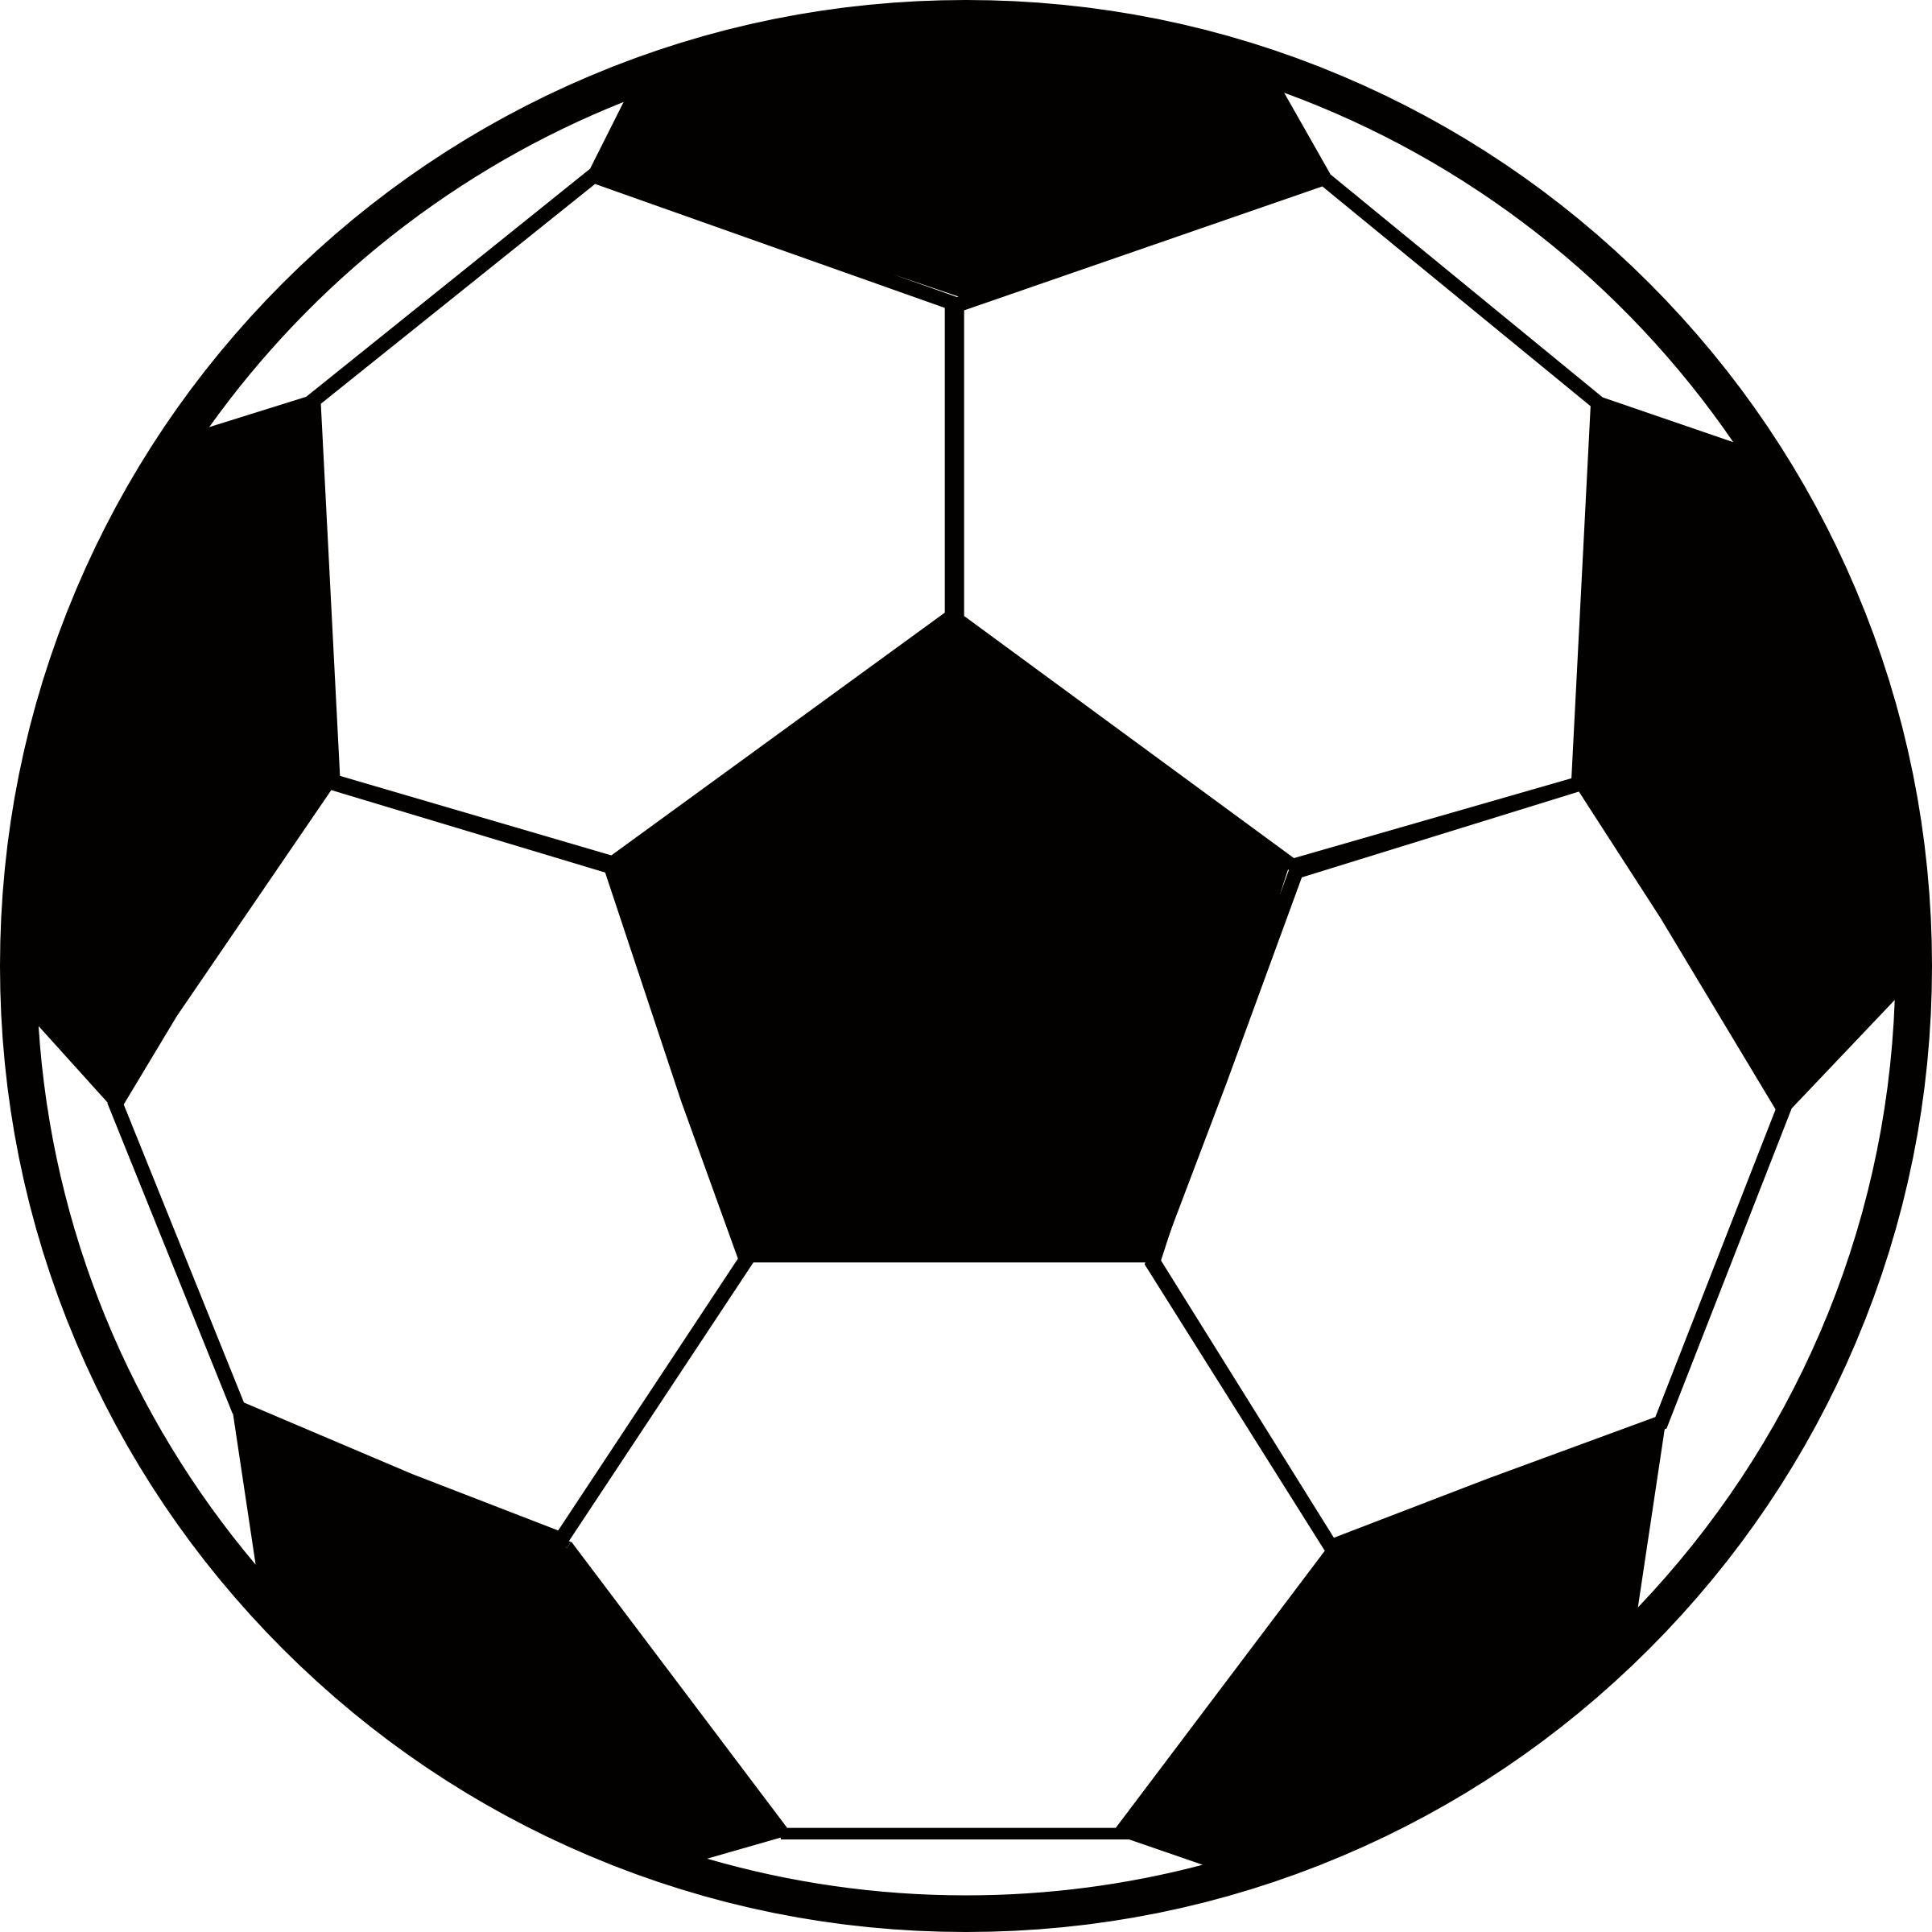 Soccer ball clipart. Collection of images